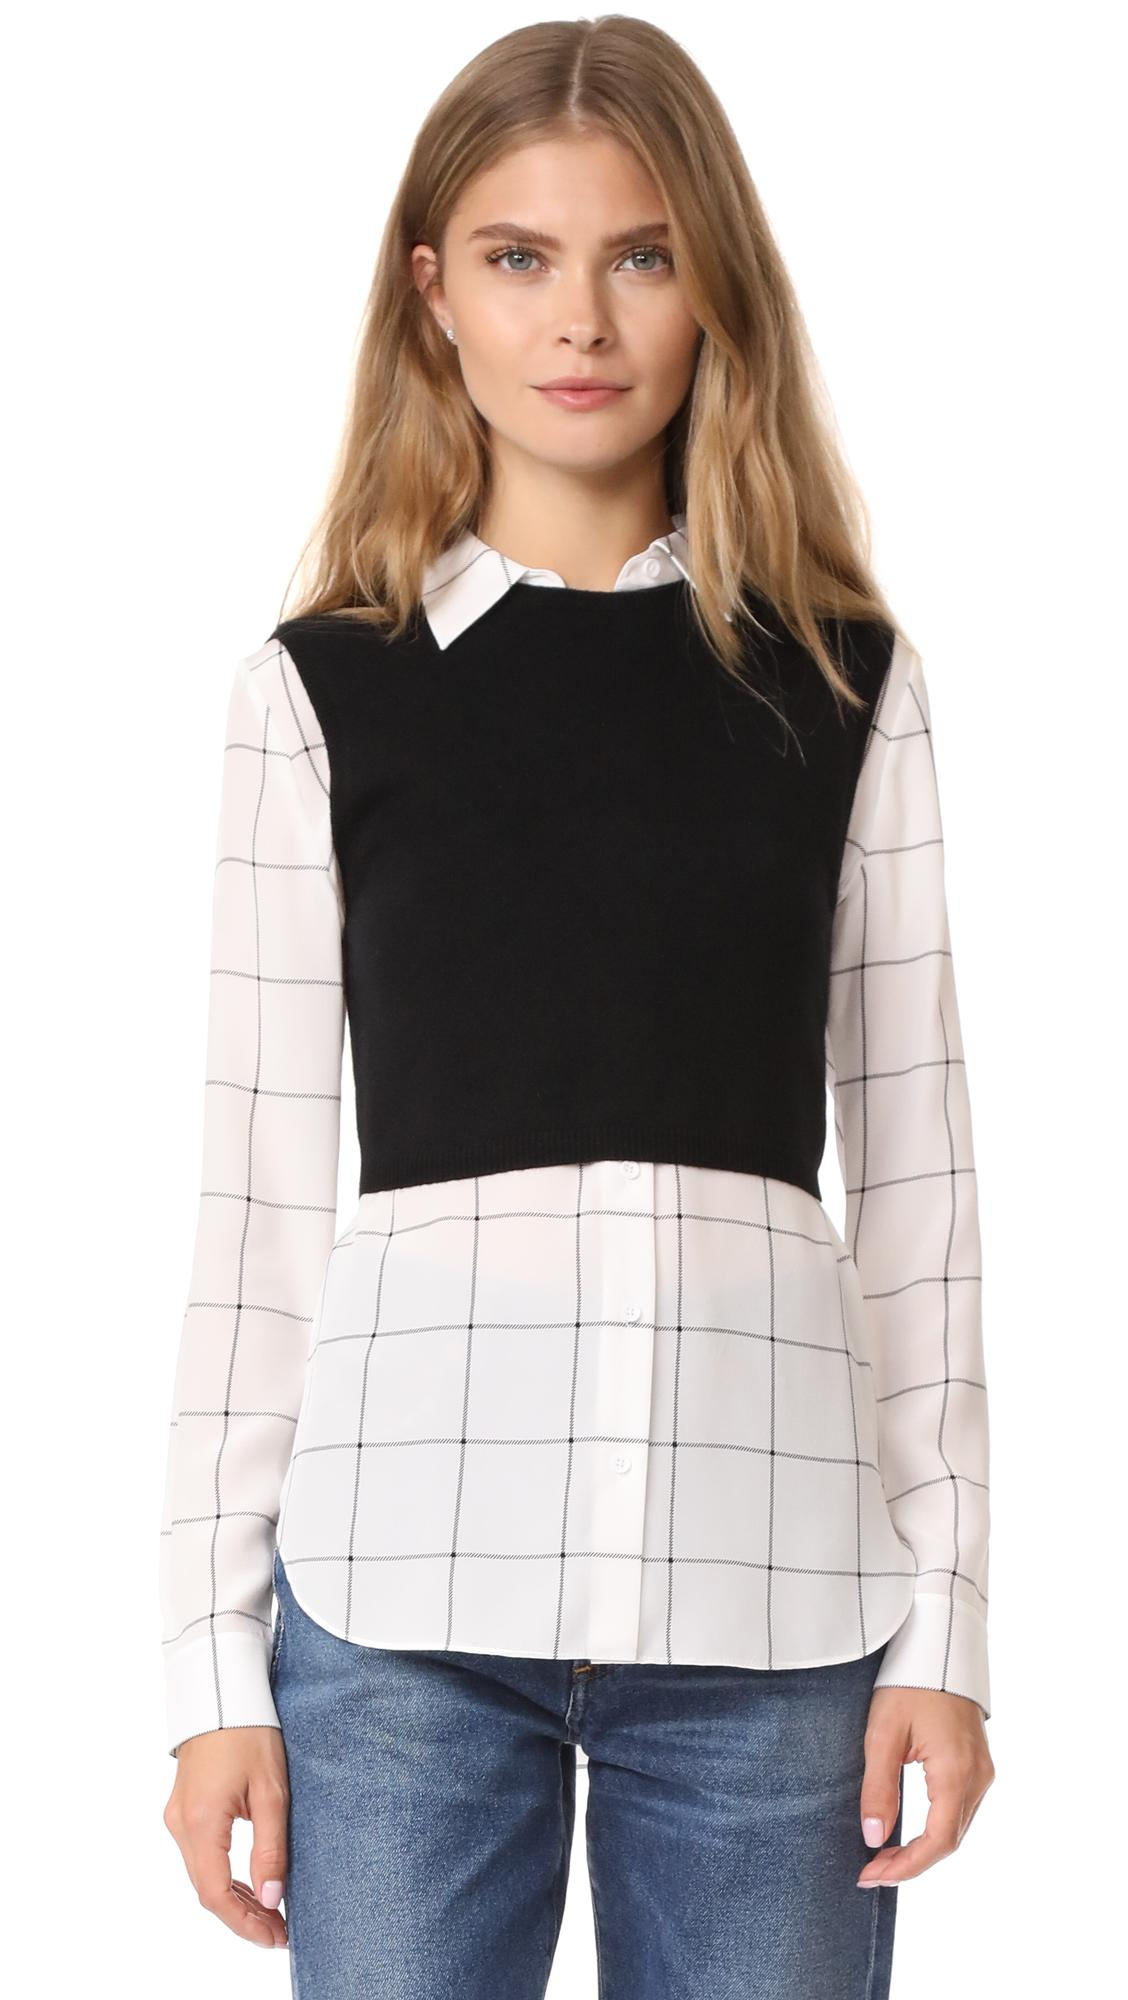 Alice olivia lucinda sweater vest combo shirt in black for Sweater and dress shirt combo